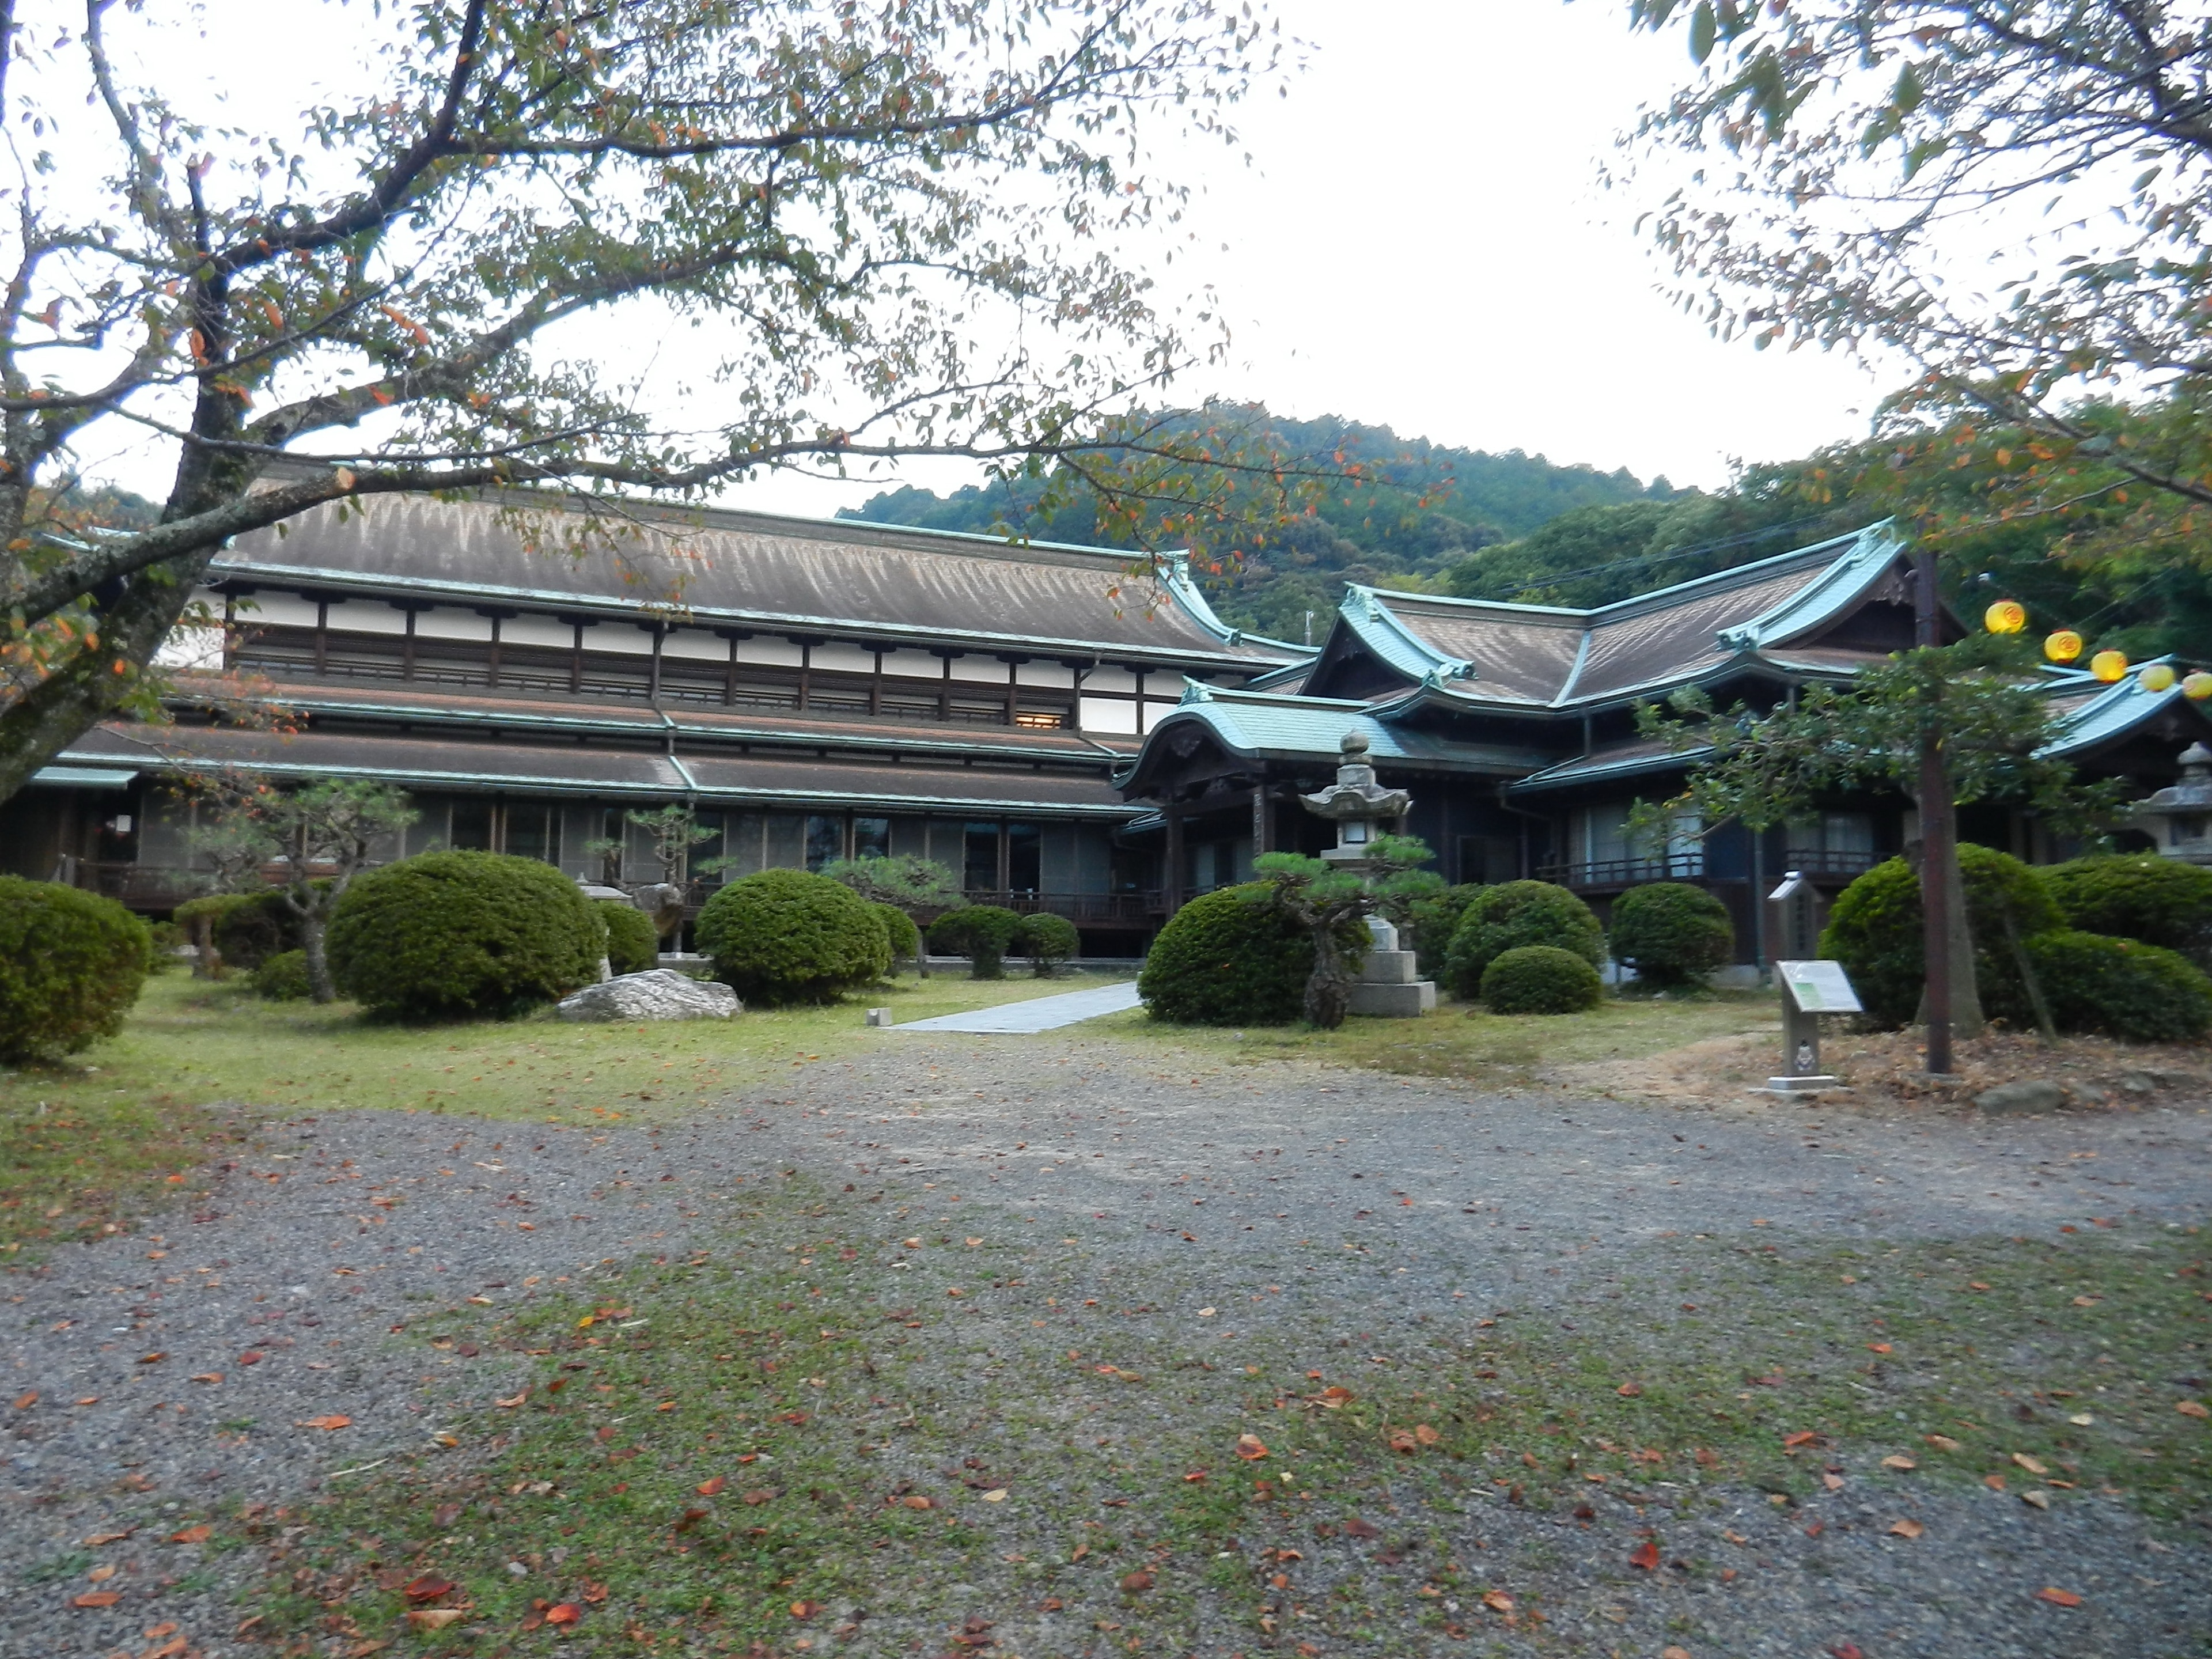 """Photo """"琴平町公會堂 Kotohira-cho Assembly Hall"""" by lienyuan lee (Creative Commons Attribution 3.0) / Cropped from original"""